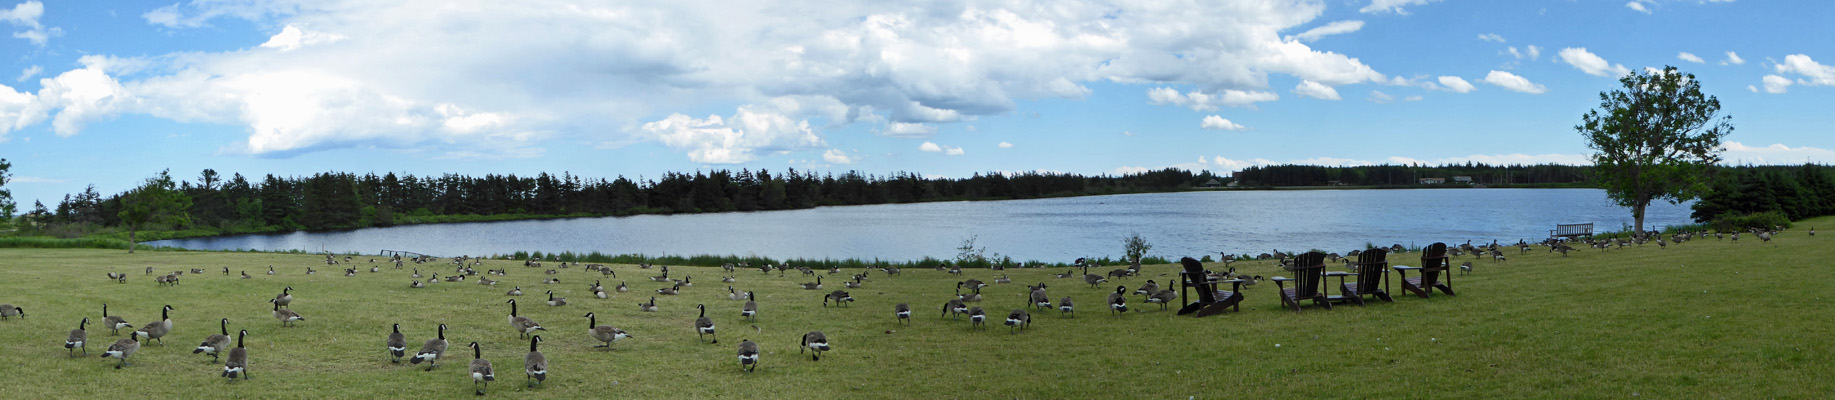 Canada Geese Dalvay-by-the-Sea